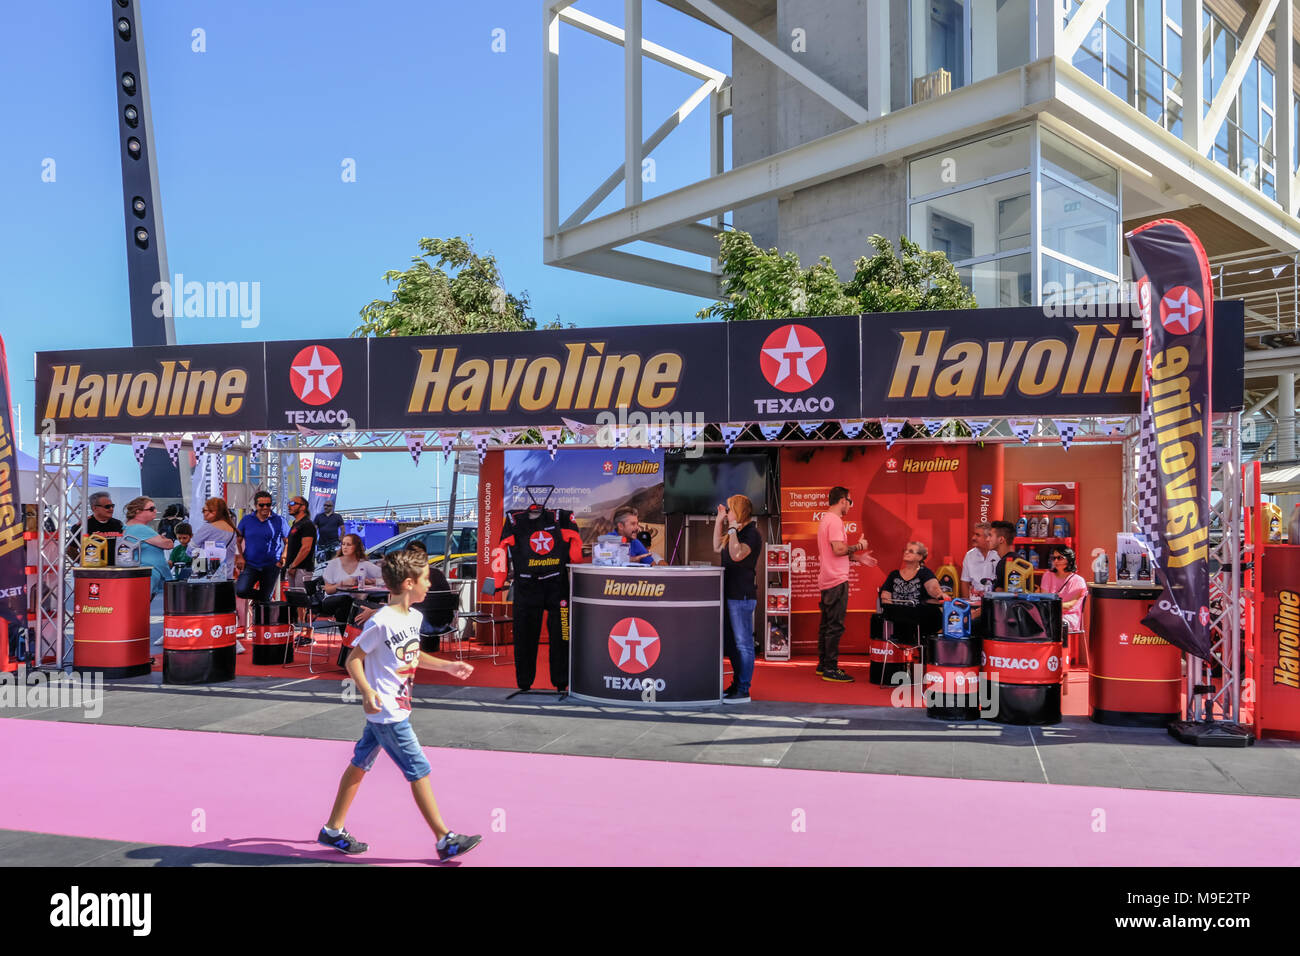 Limassol, Cyprus - October 1, 2017:  Havoline oil exhibit at a car show with young lad passing by and looking. - Stock Image